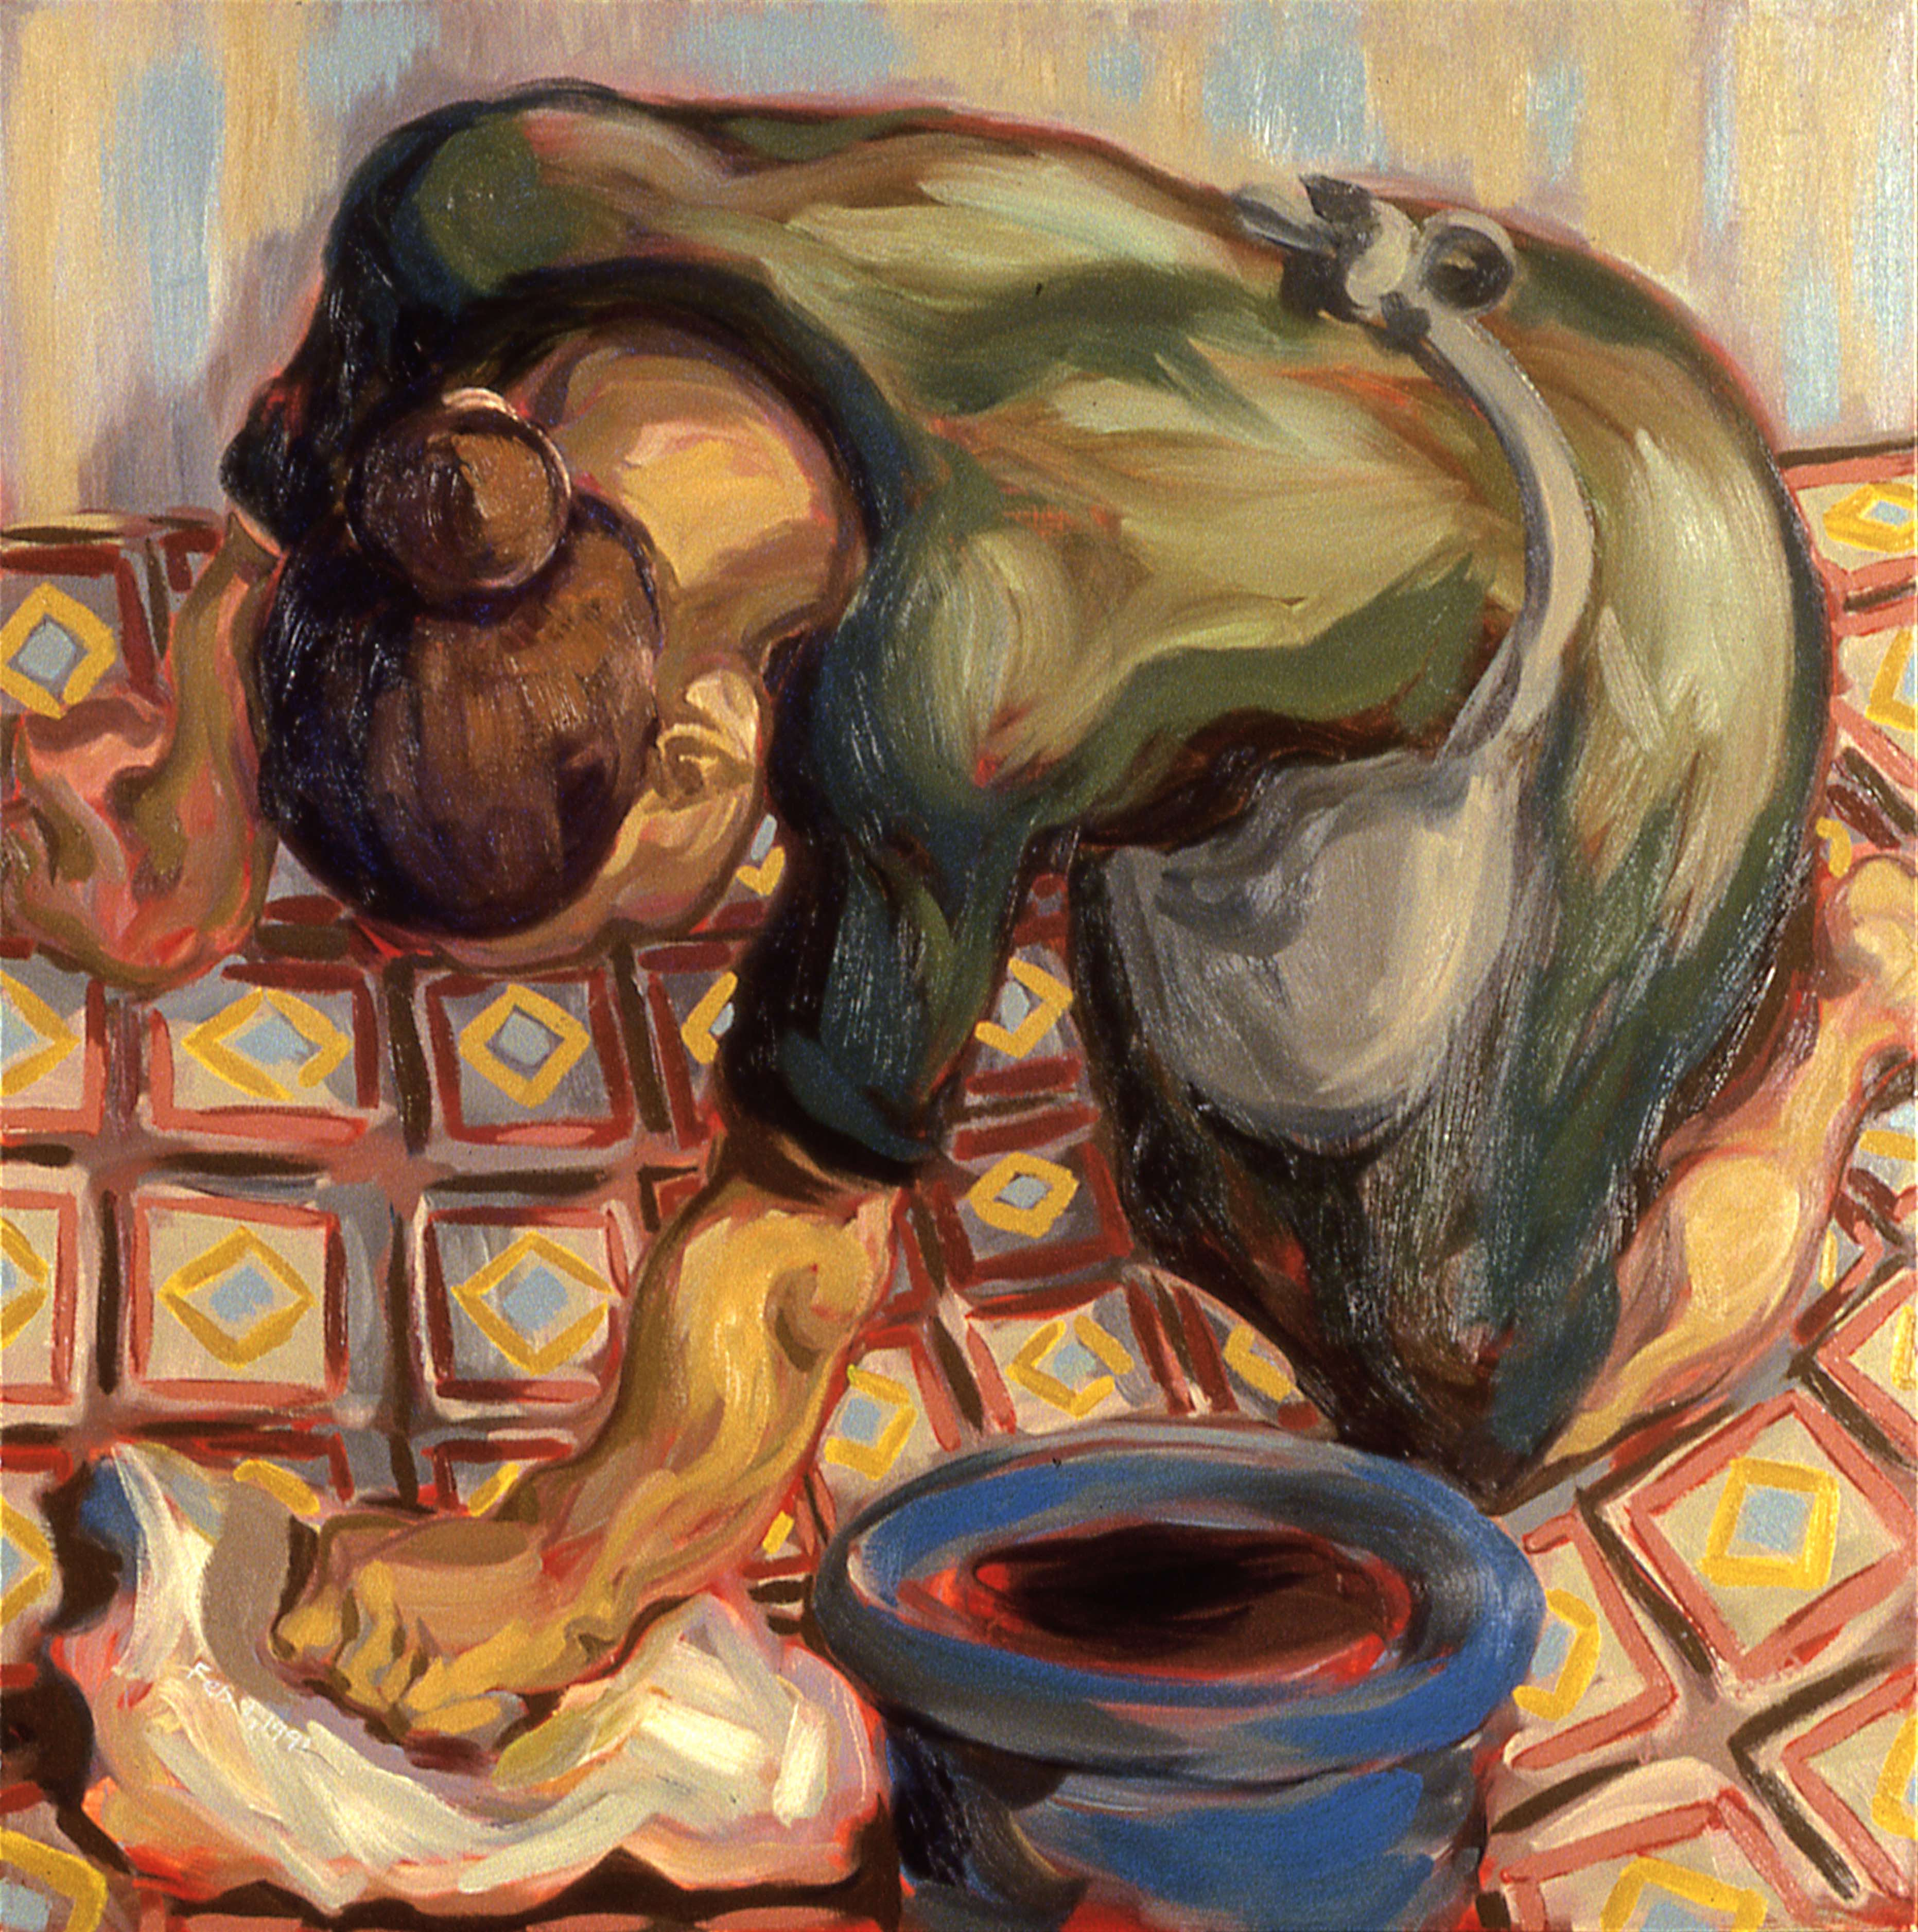 WORK IS THE CONDITION FOR EQUALITY #2, painted by Vince Mancuso in 1991, oil on canvas 4x5 feet